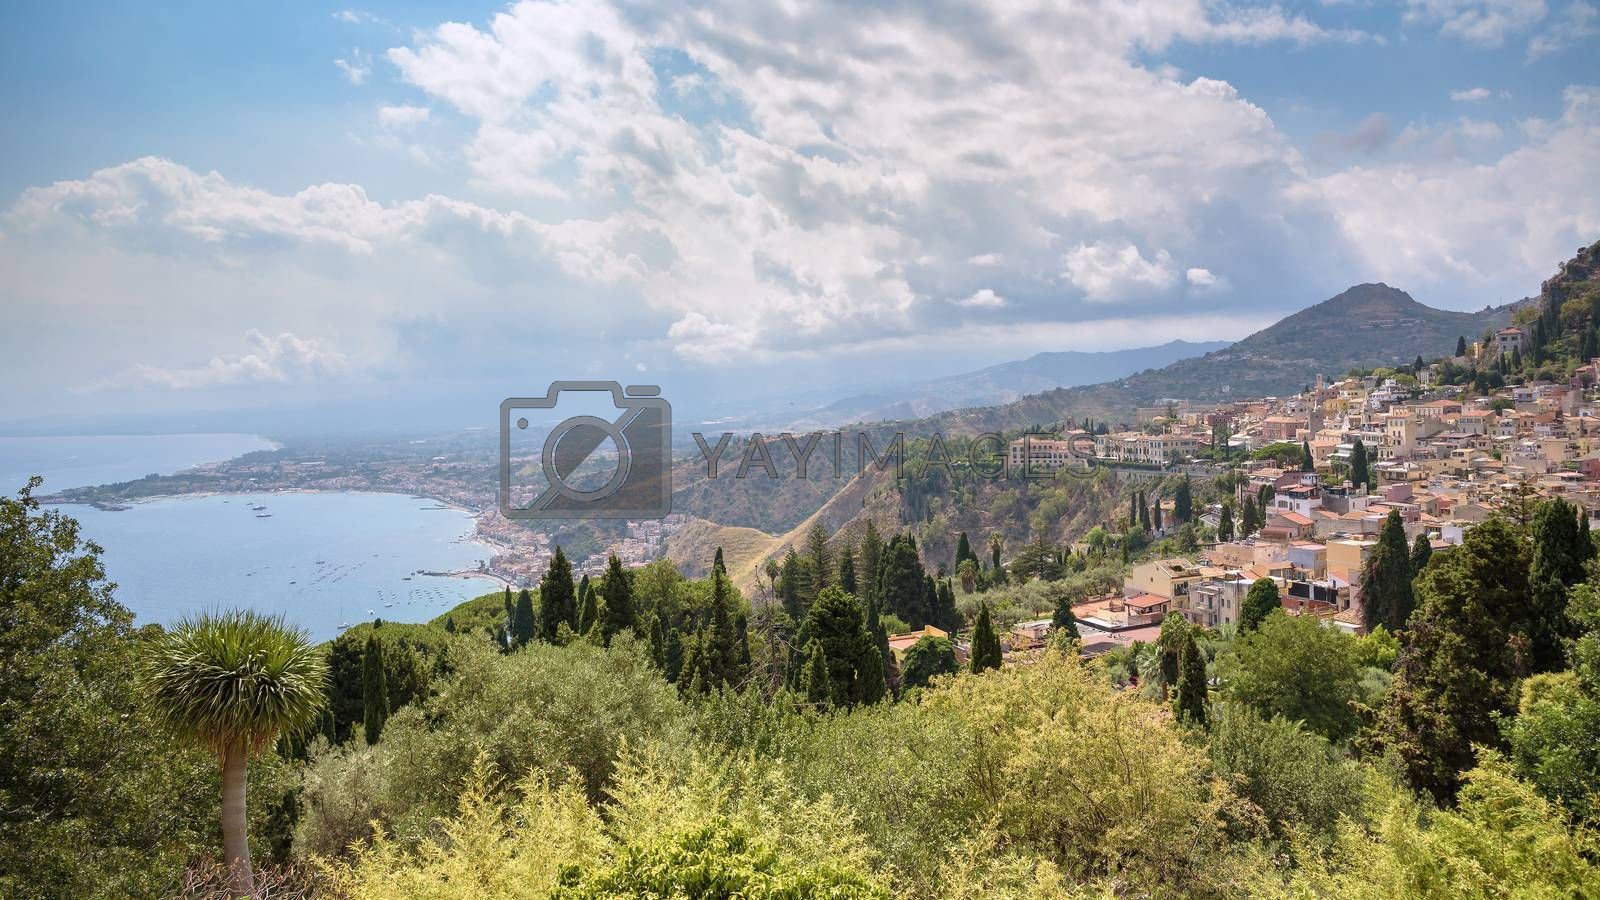 Panoramic view of Taormina with Giardini Naxox town in the backgroind, Sicily, Italy